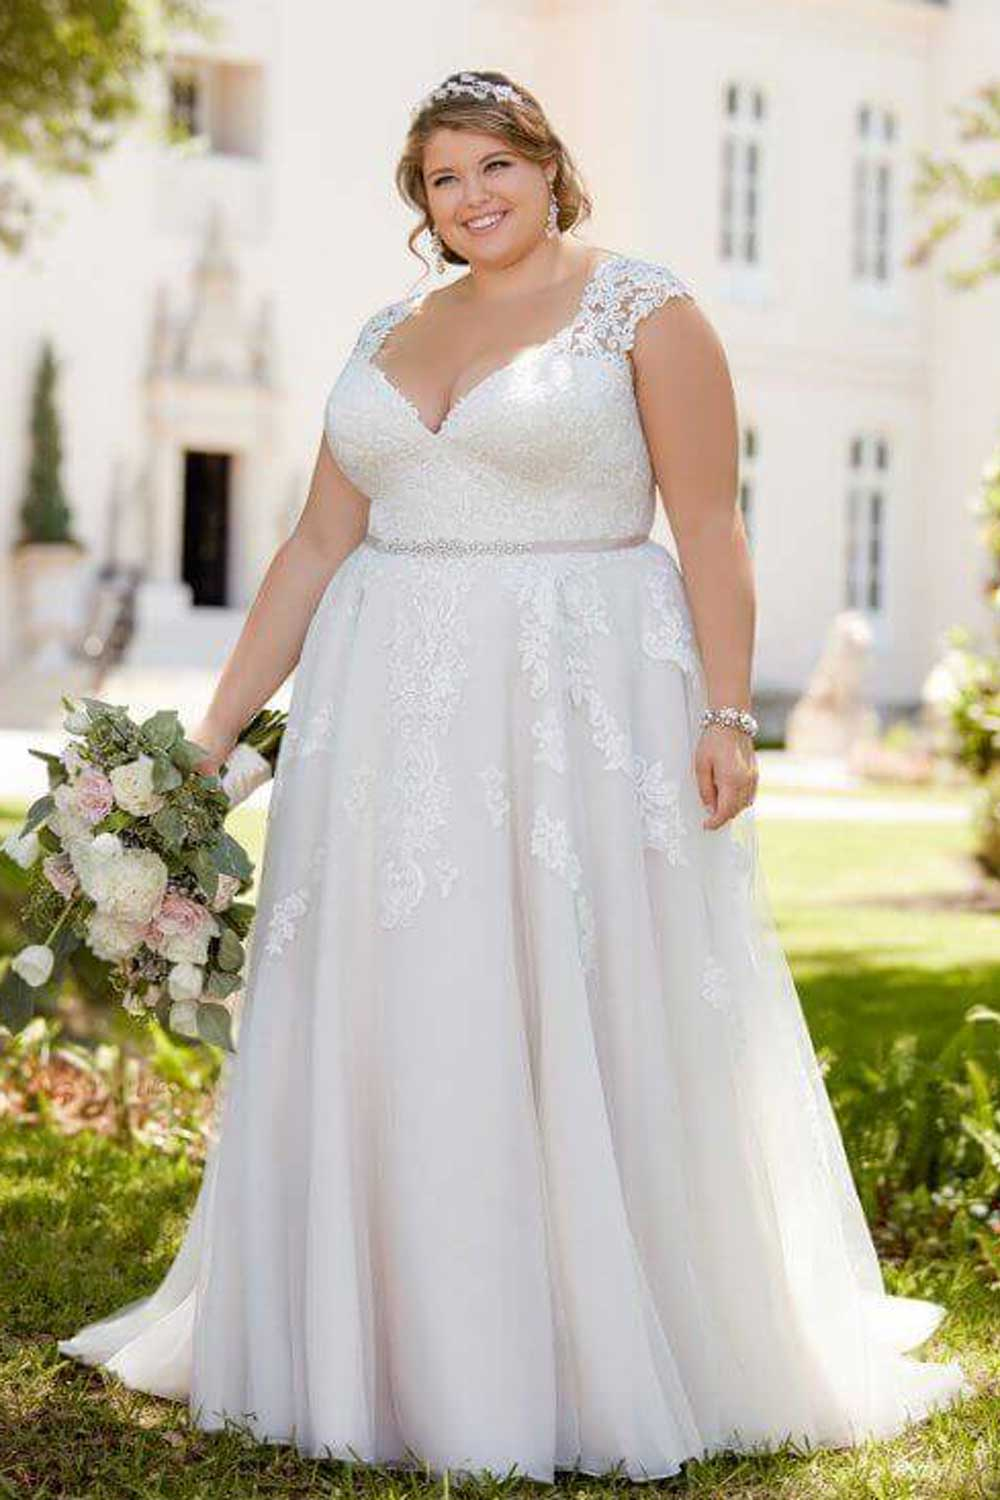 Taffeta and Lace wedding dresses Gloucester Stella York EBEB 6391-A1